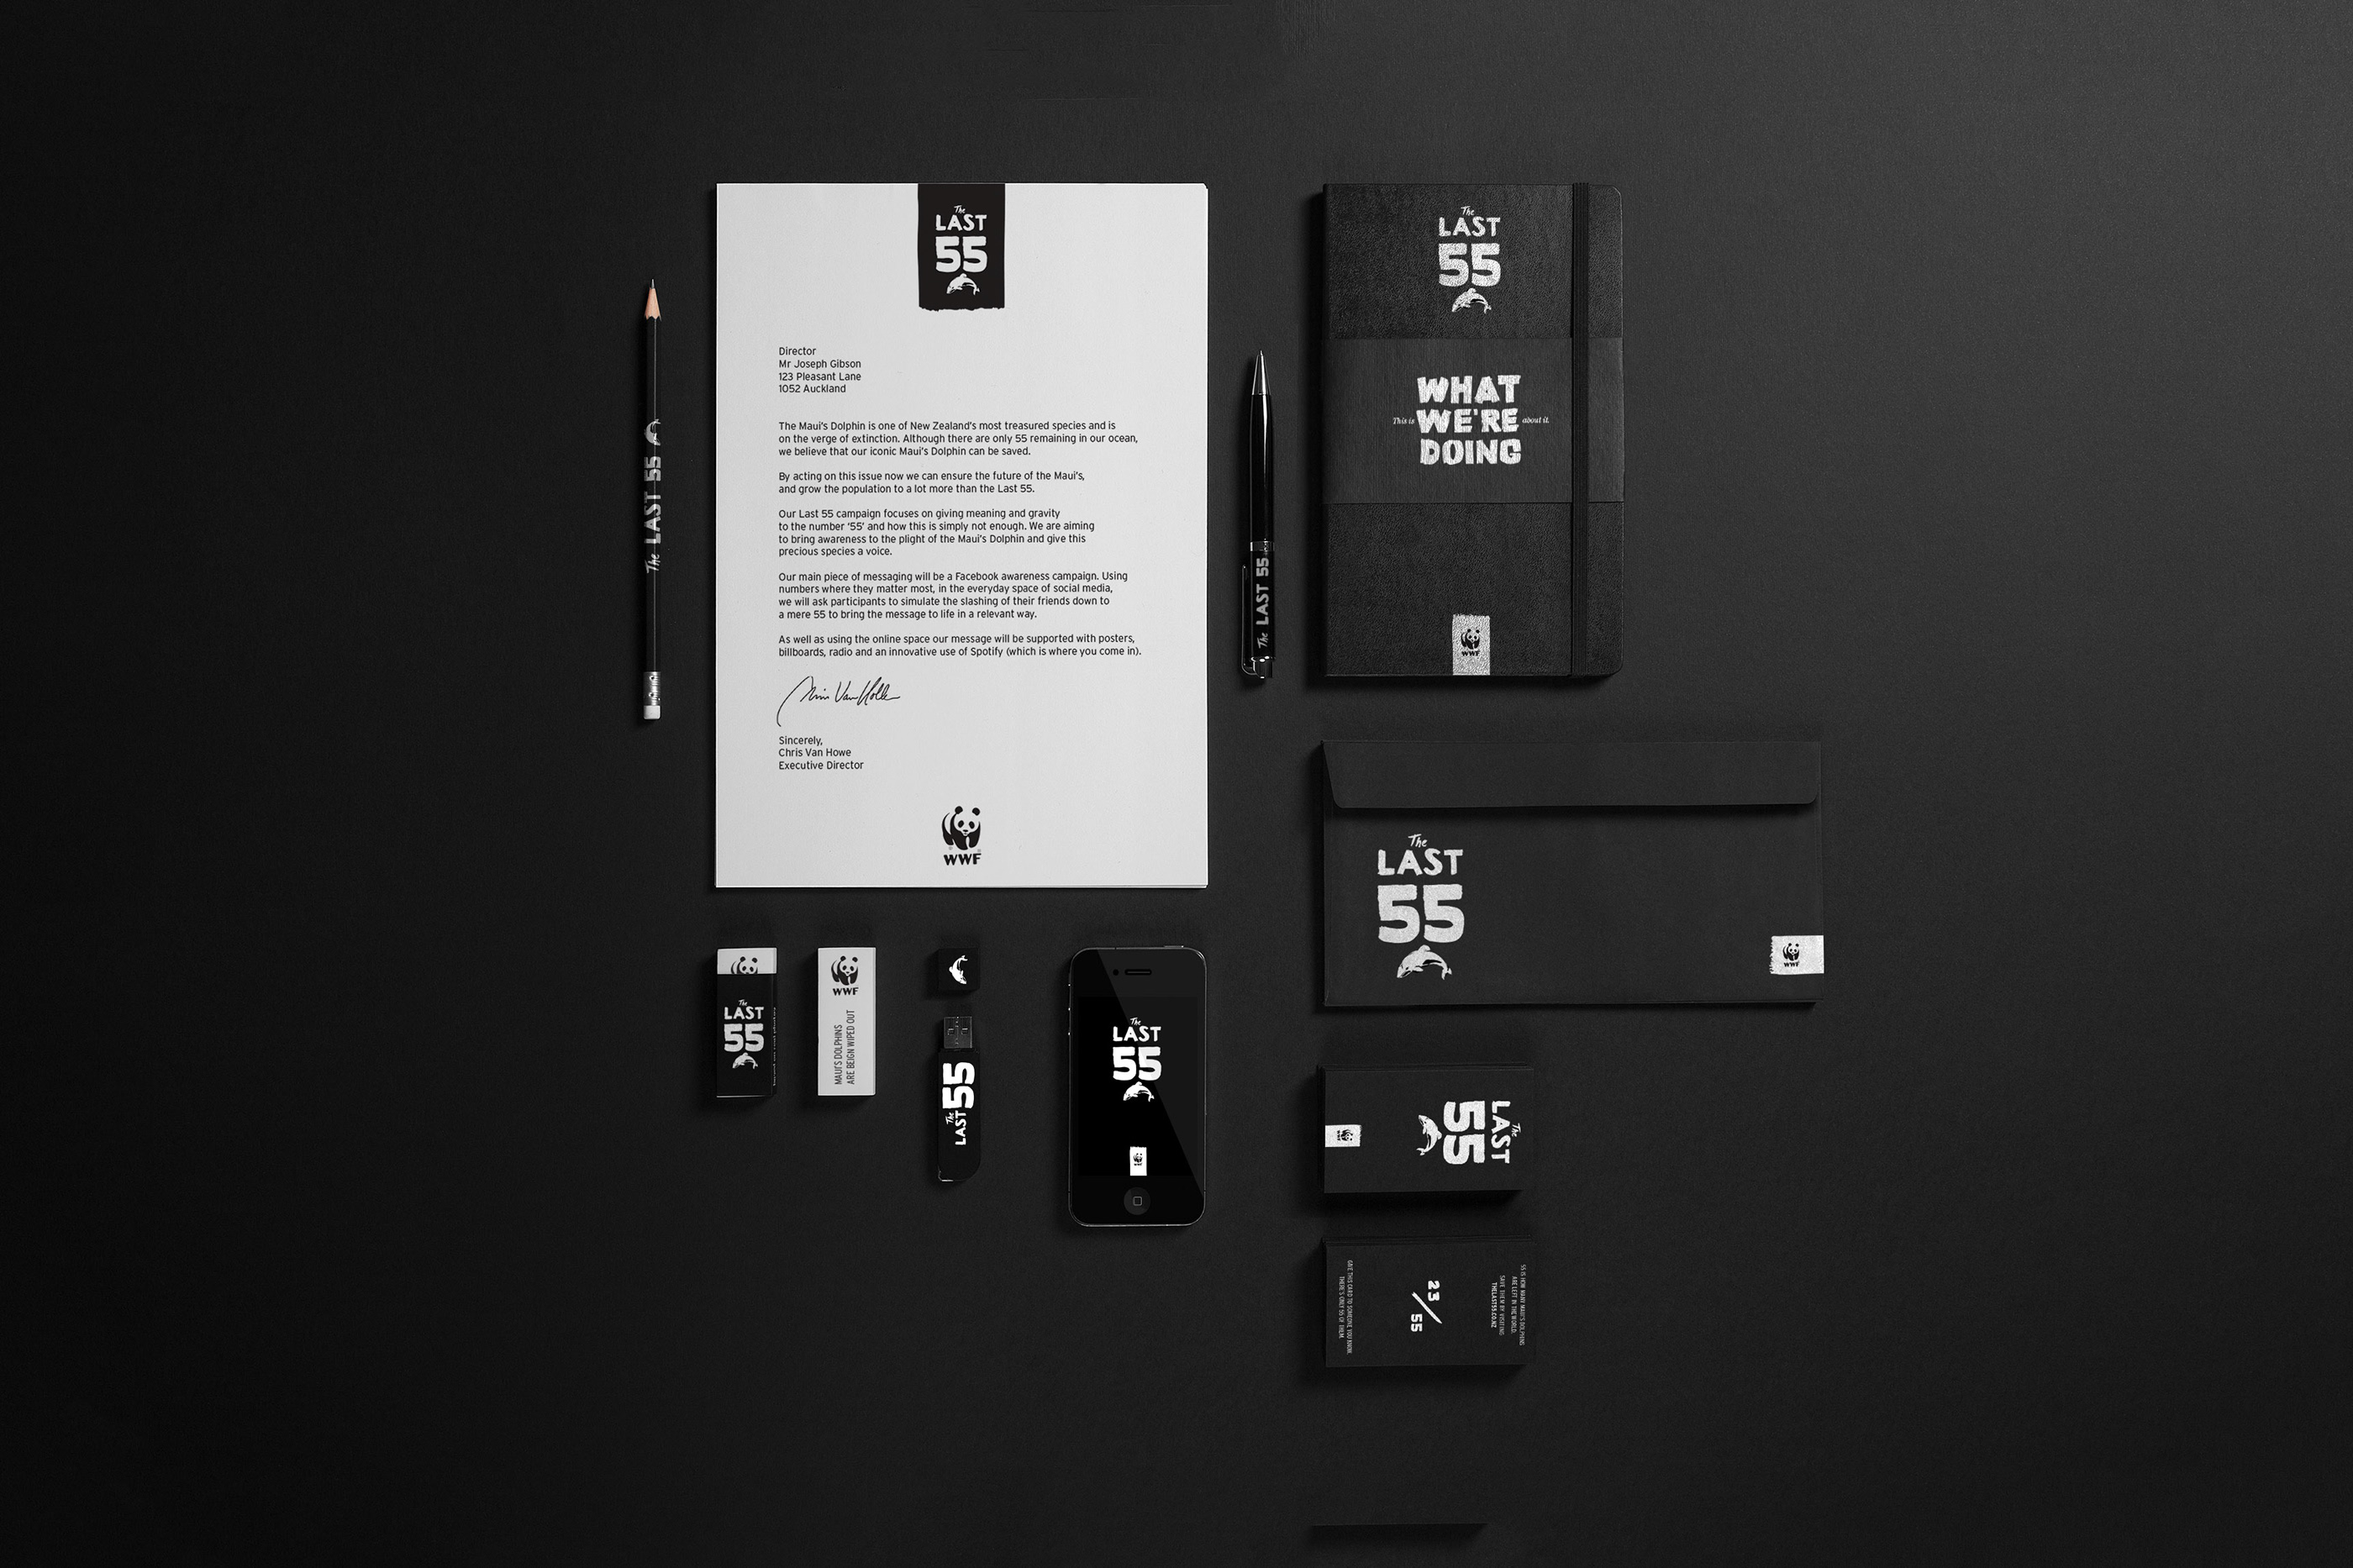 WWF The Last 55 on Behance